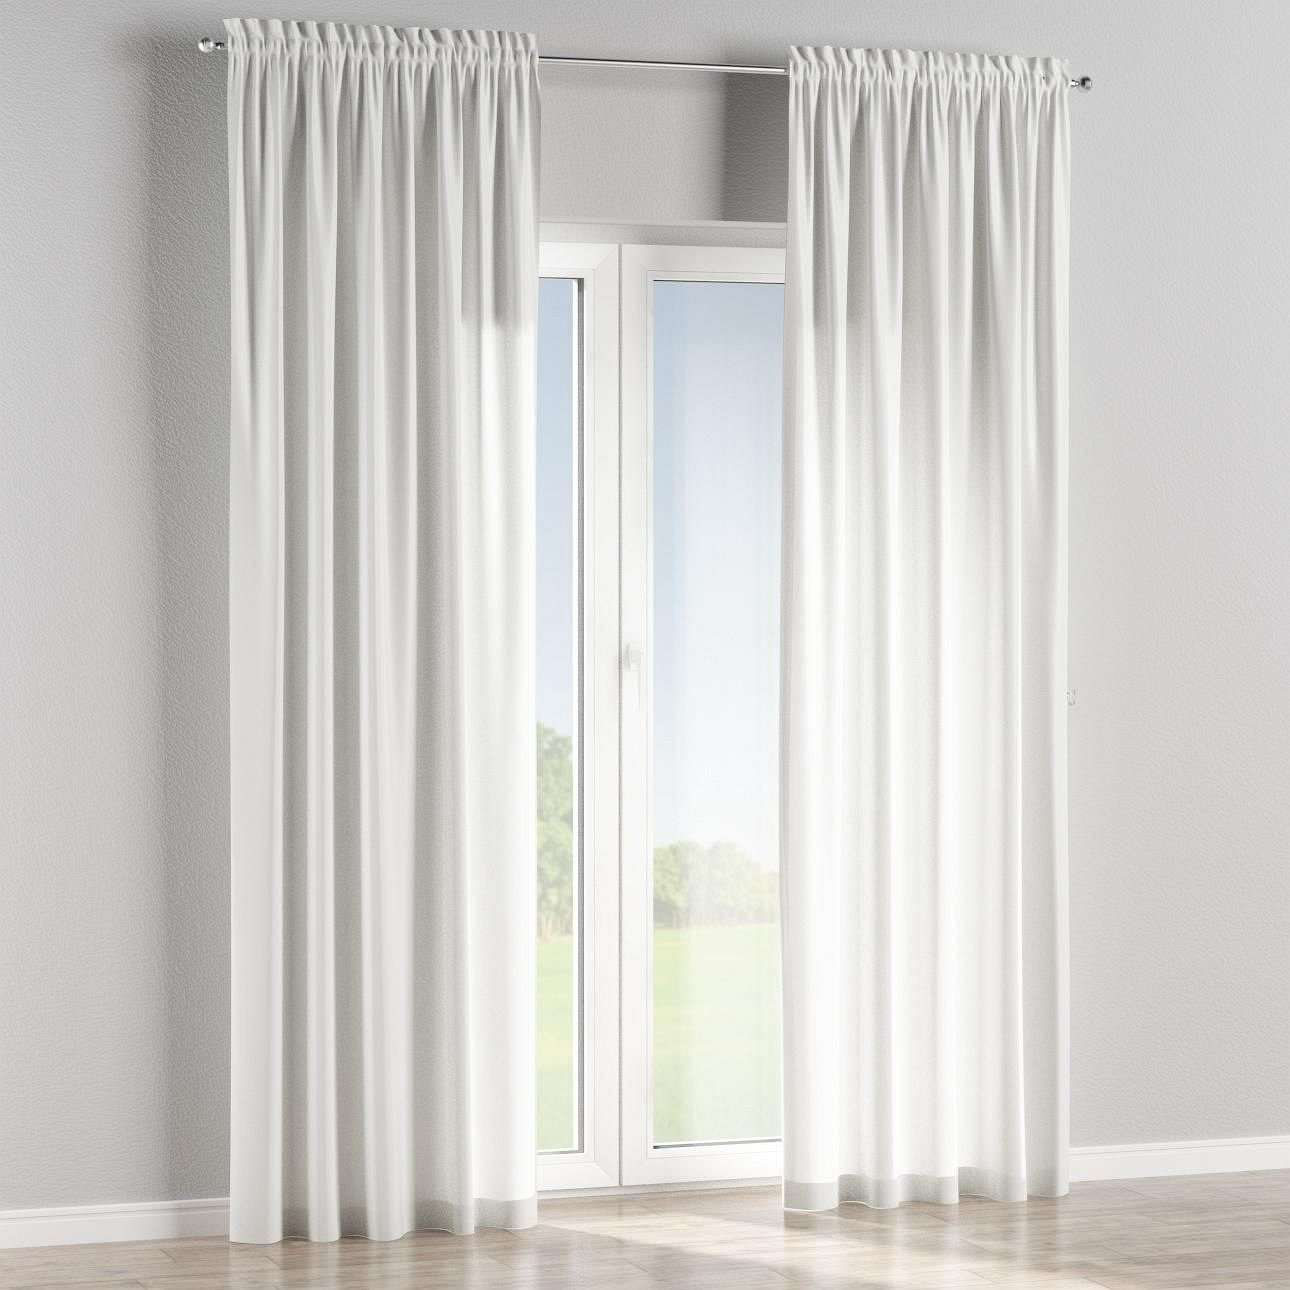 Slot and frill curtains in collection Taffeta , fabric: 103-85